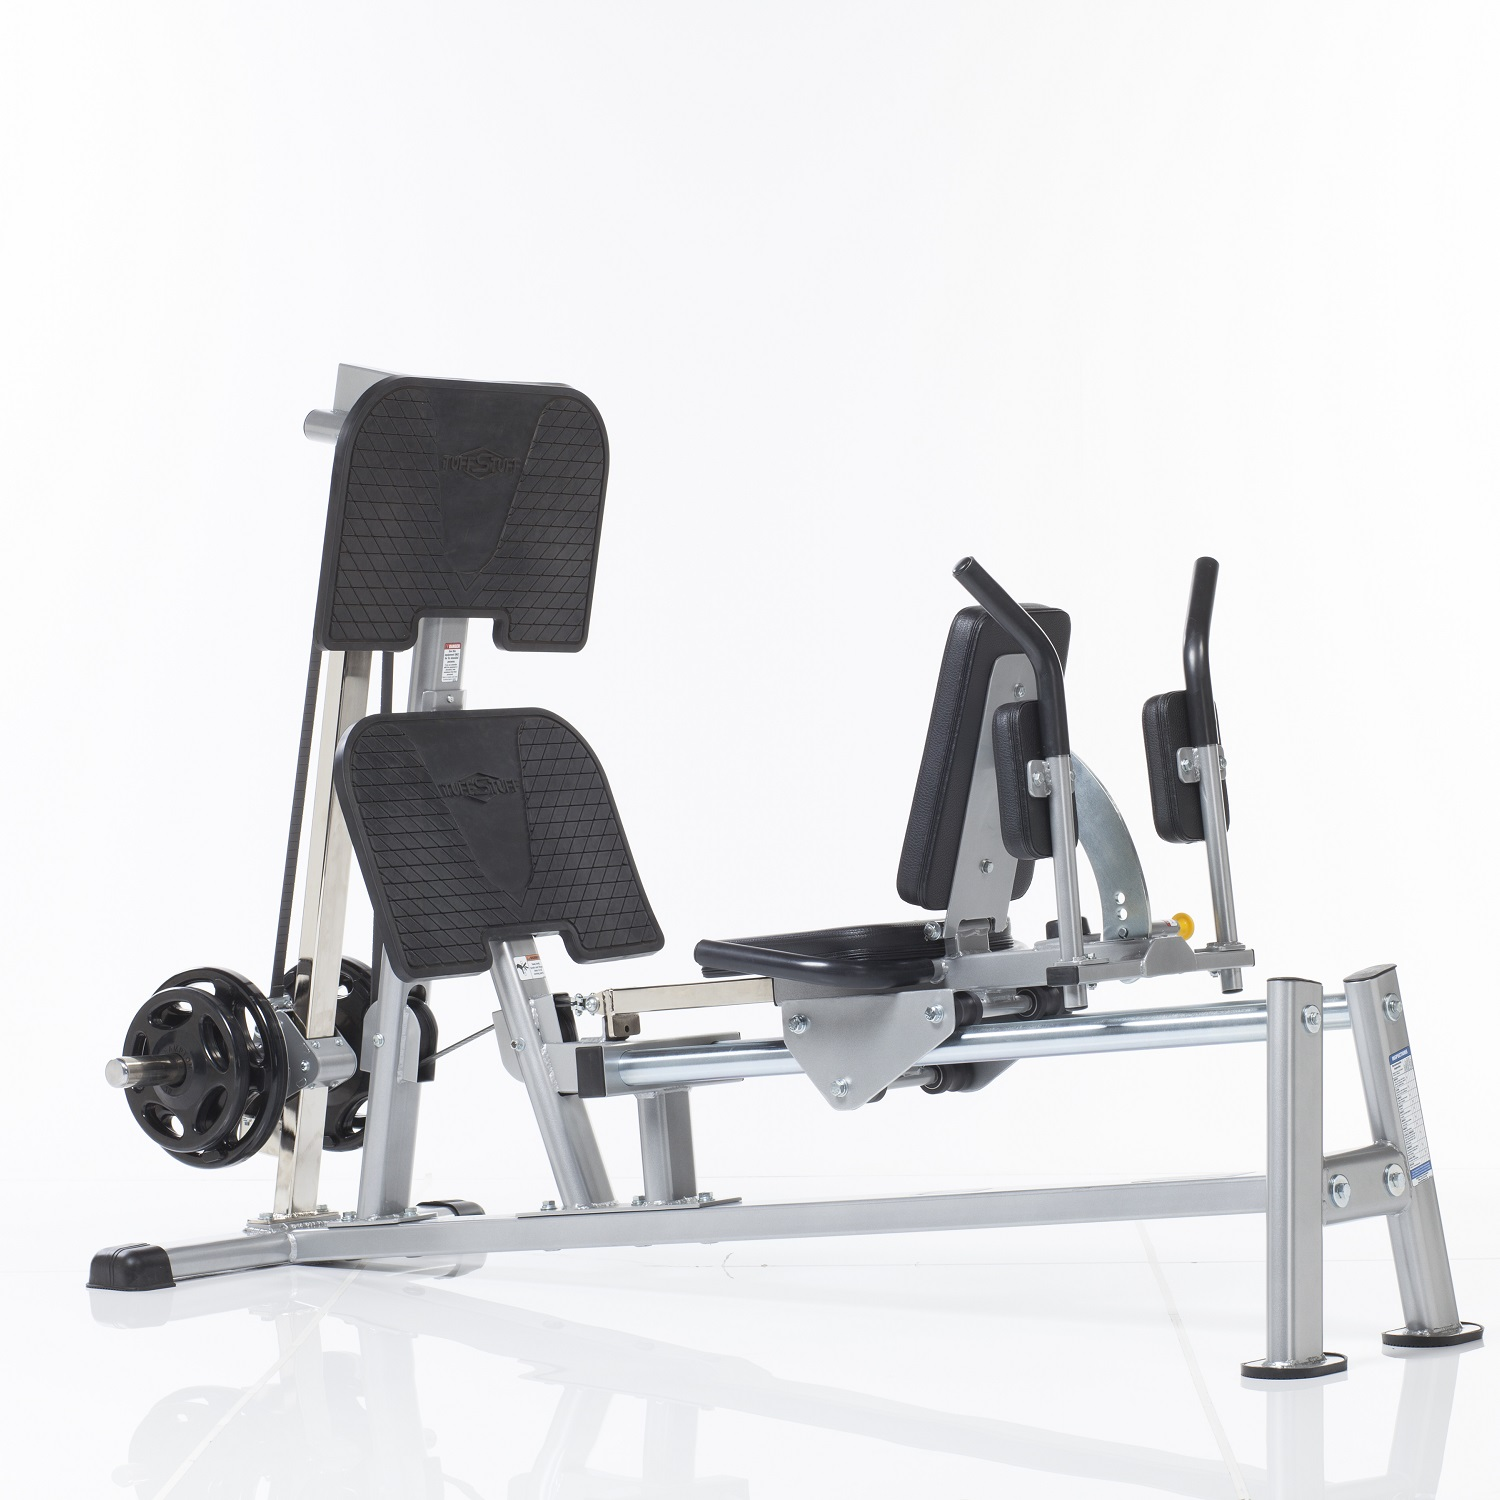 KDS/CLH-300 Horizontal Leg Press/Hack Squat